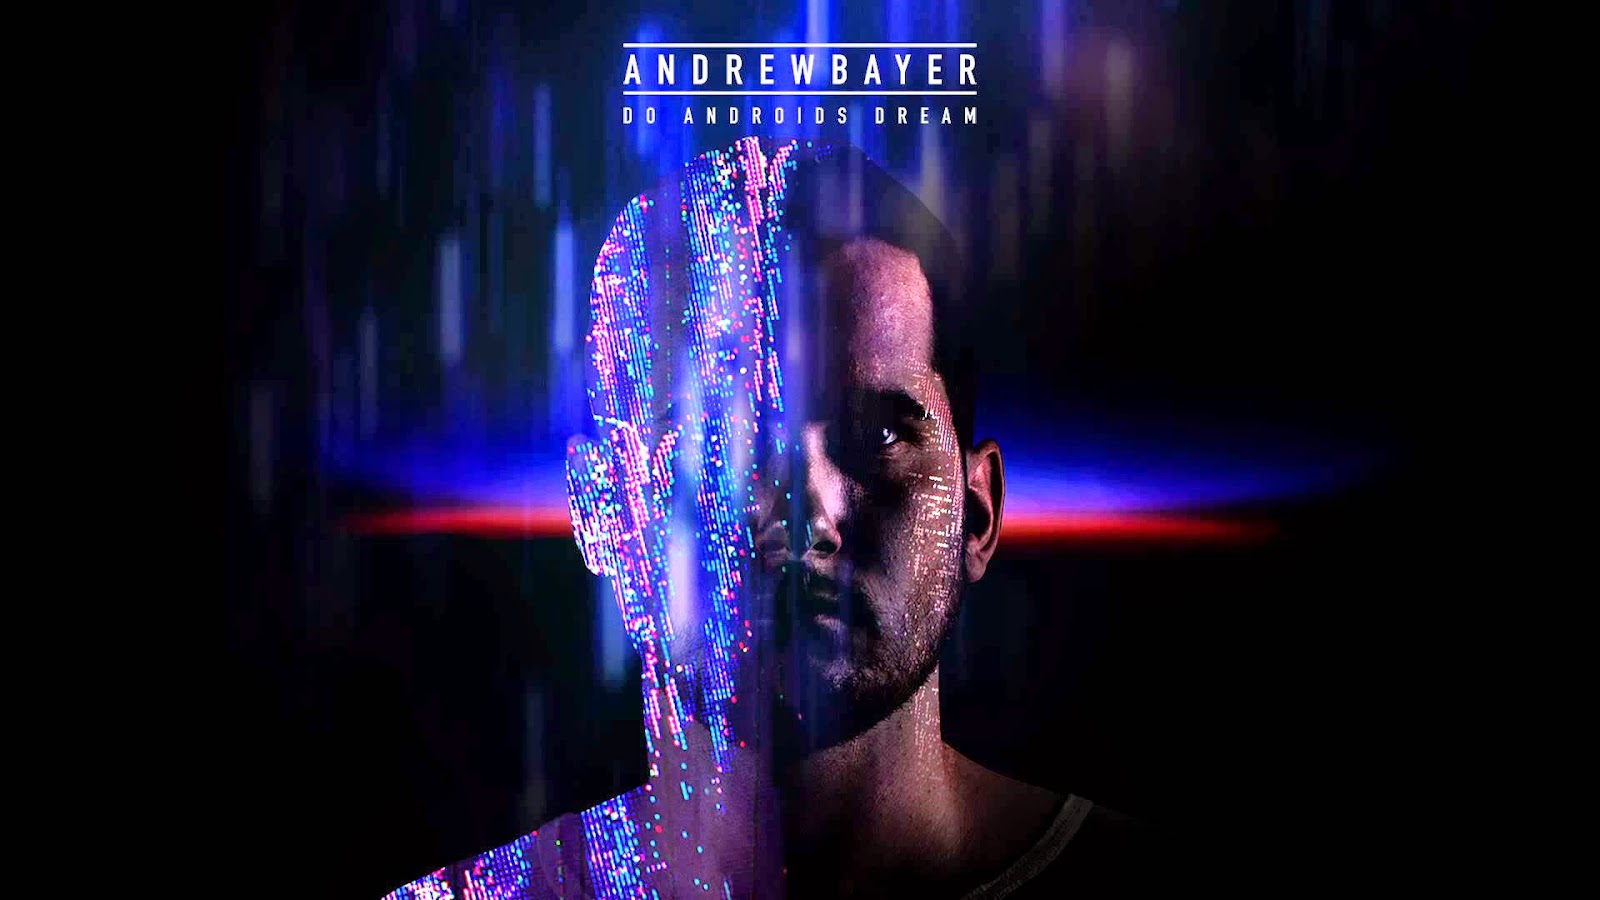 Andrew bayer do androids dream